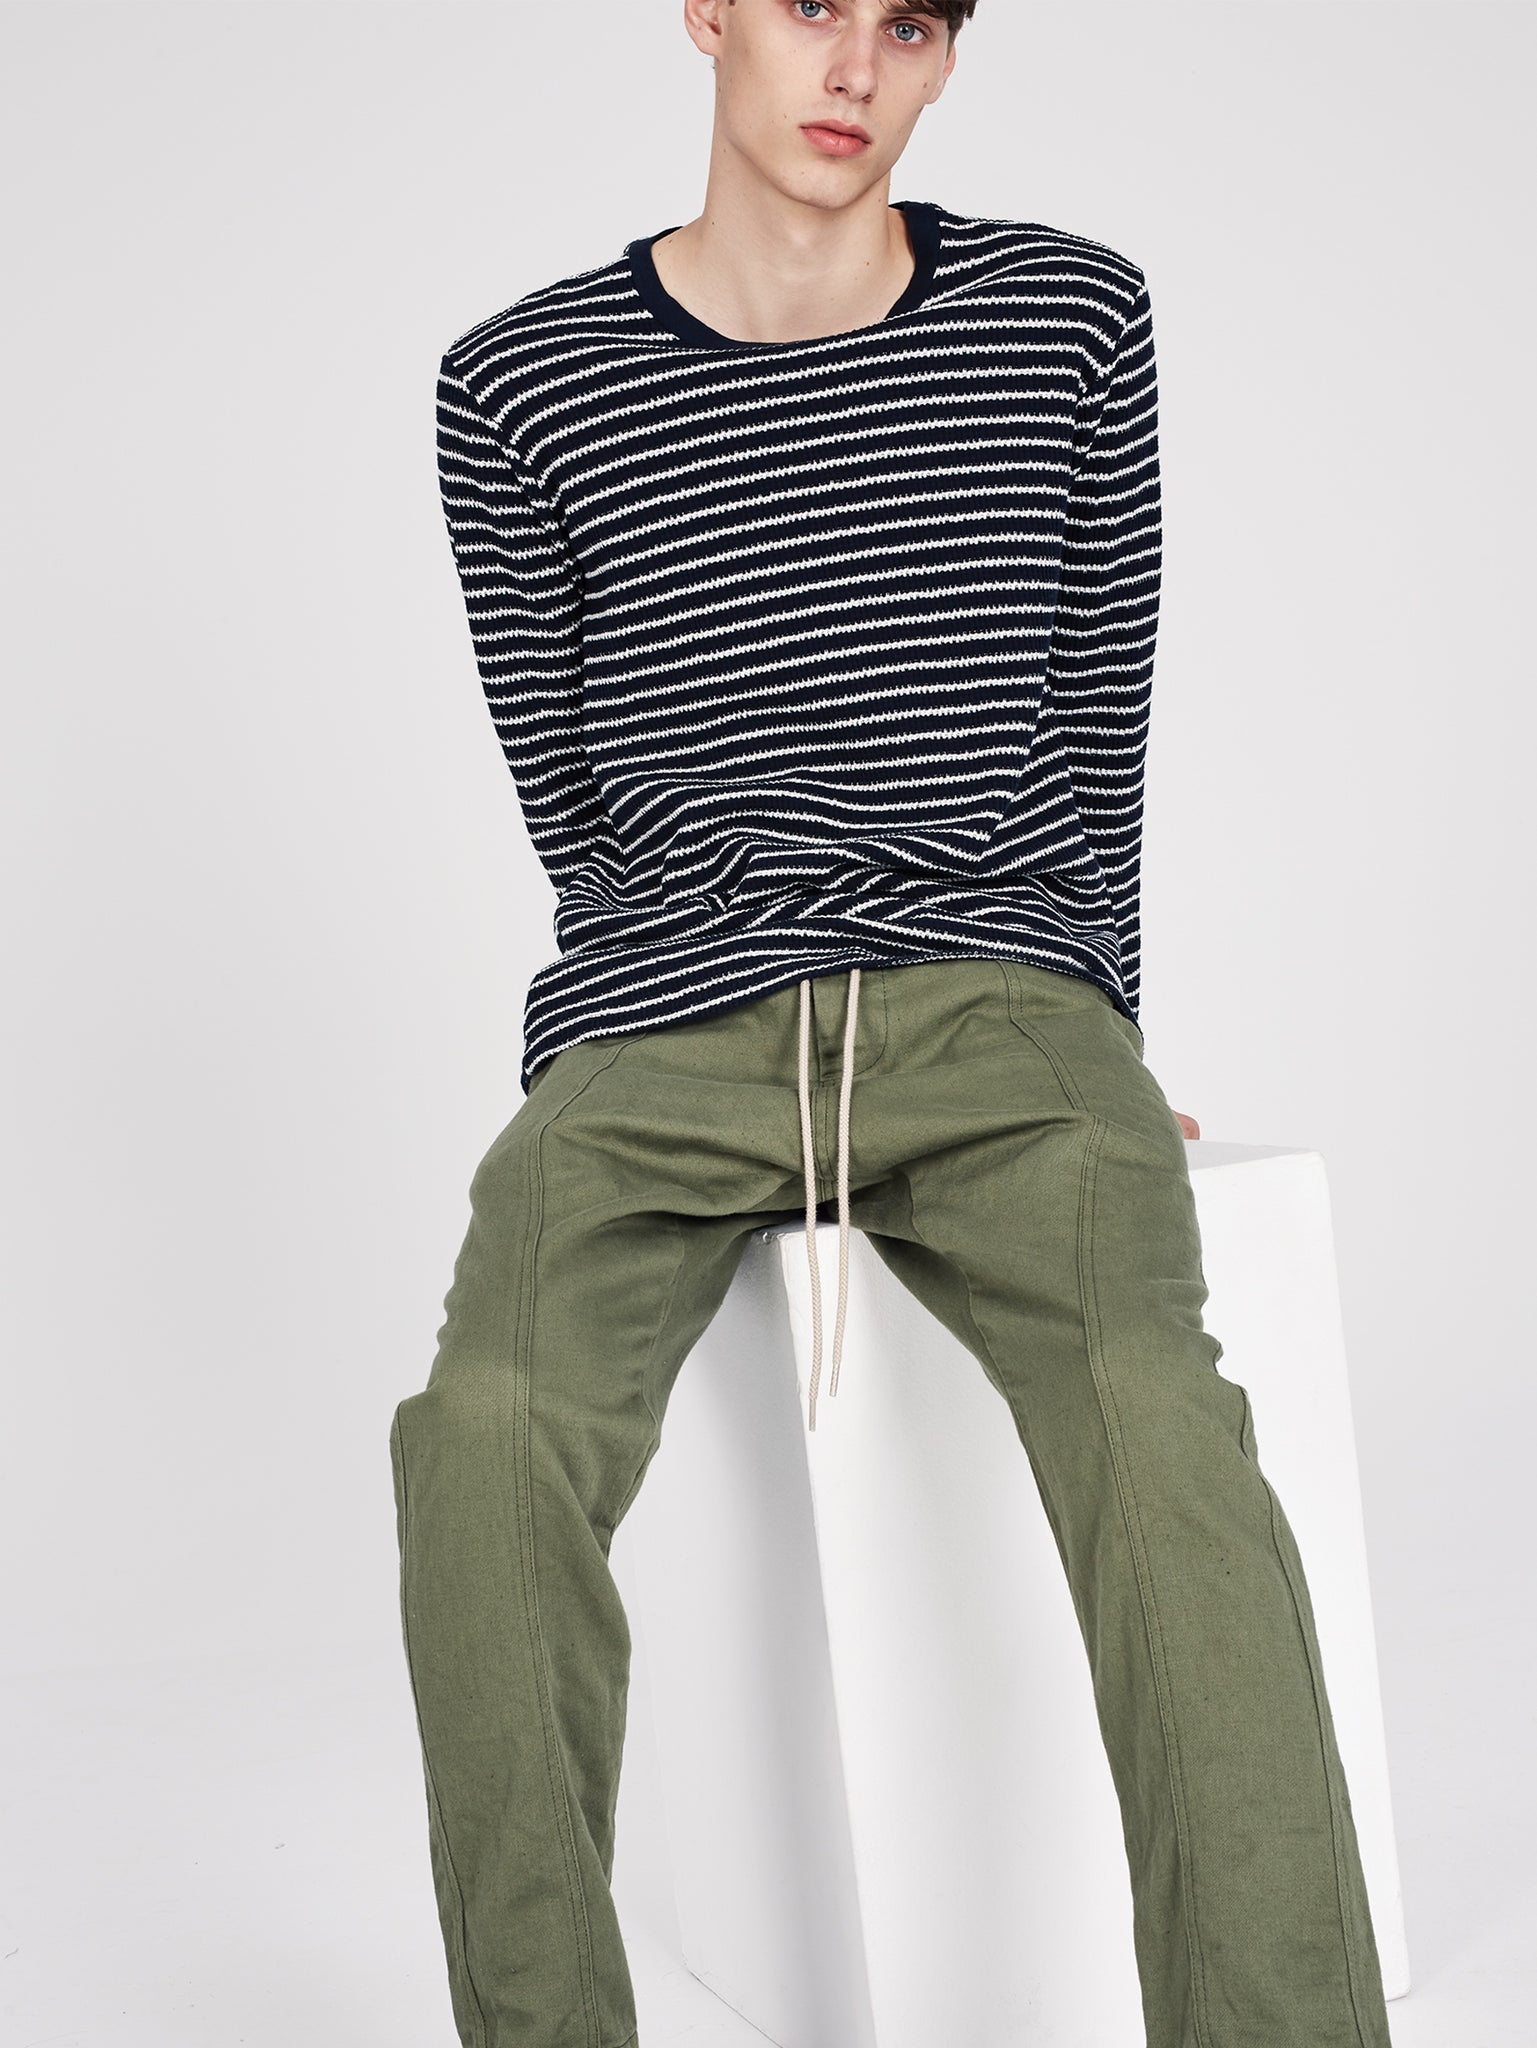 men pre collection 2019 look 15